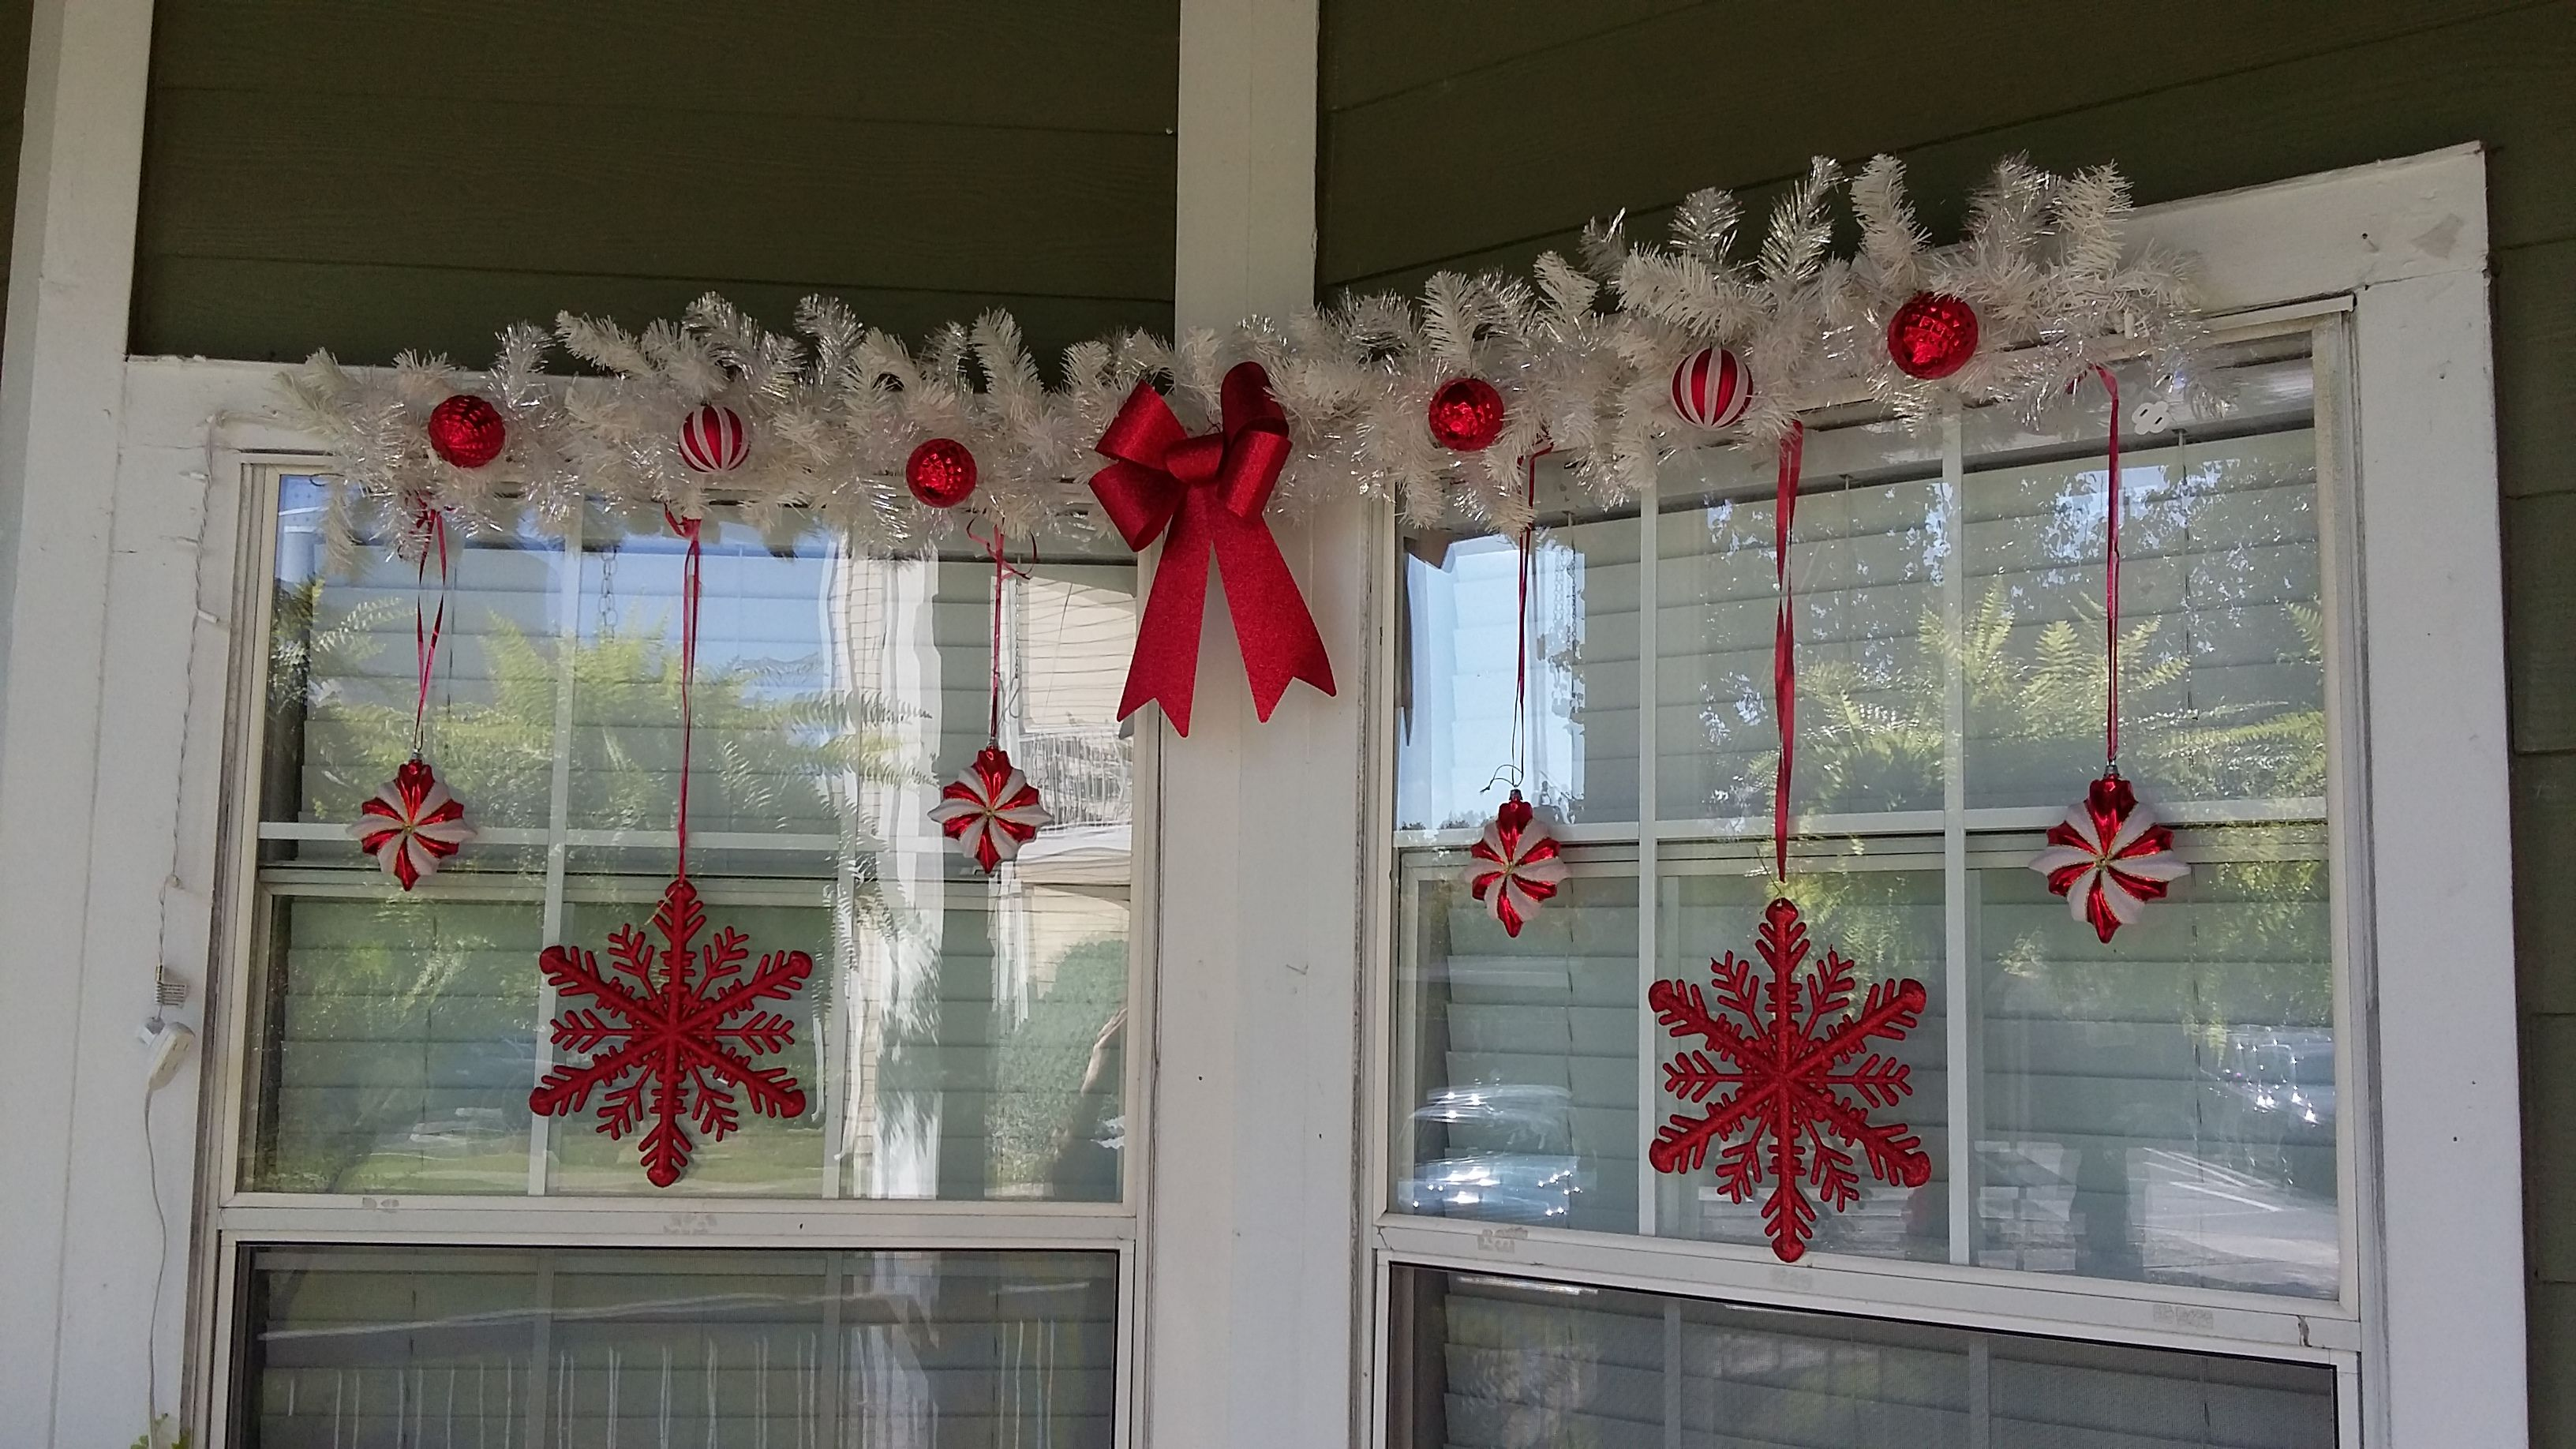 Christmas decor on my porch windows White garland red ornaments